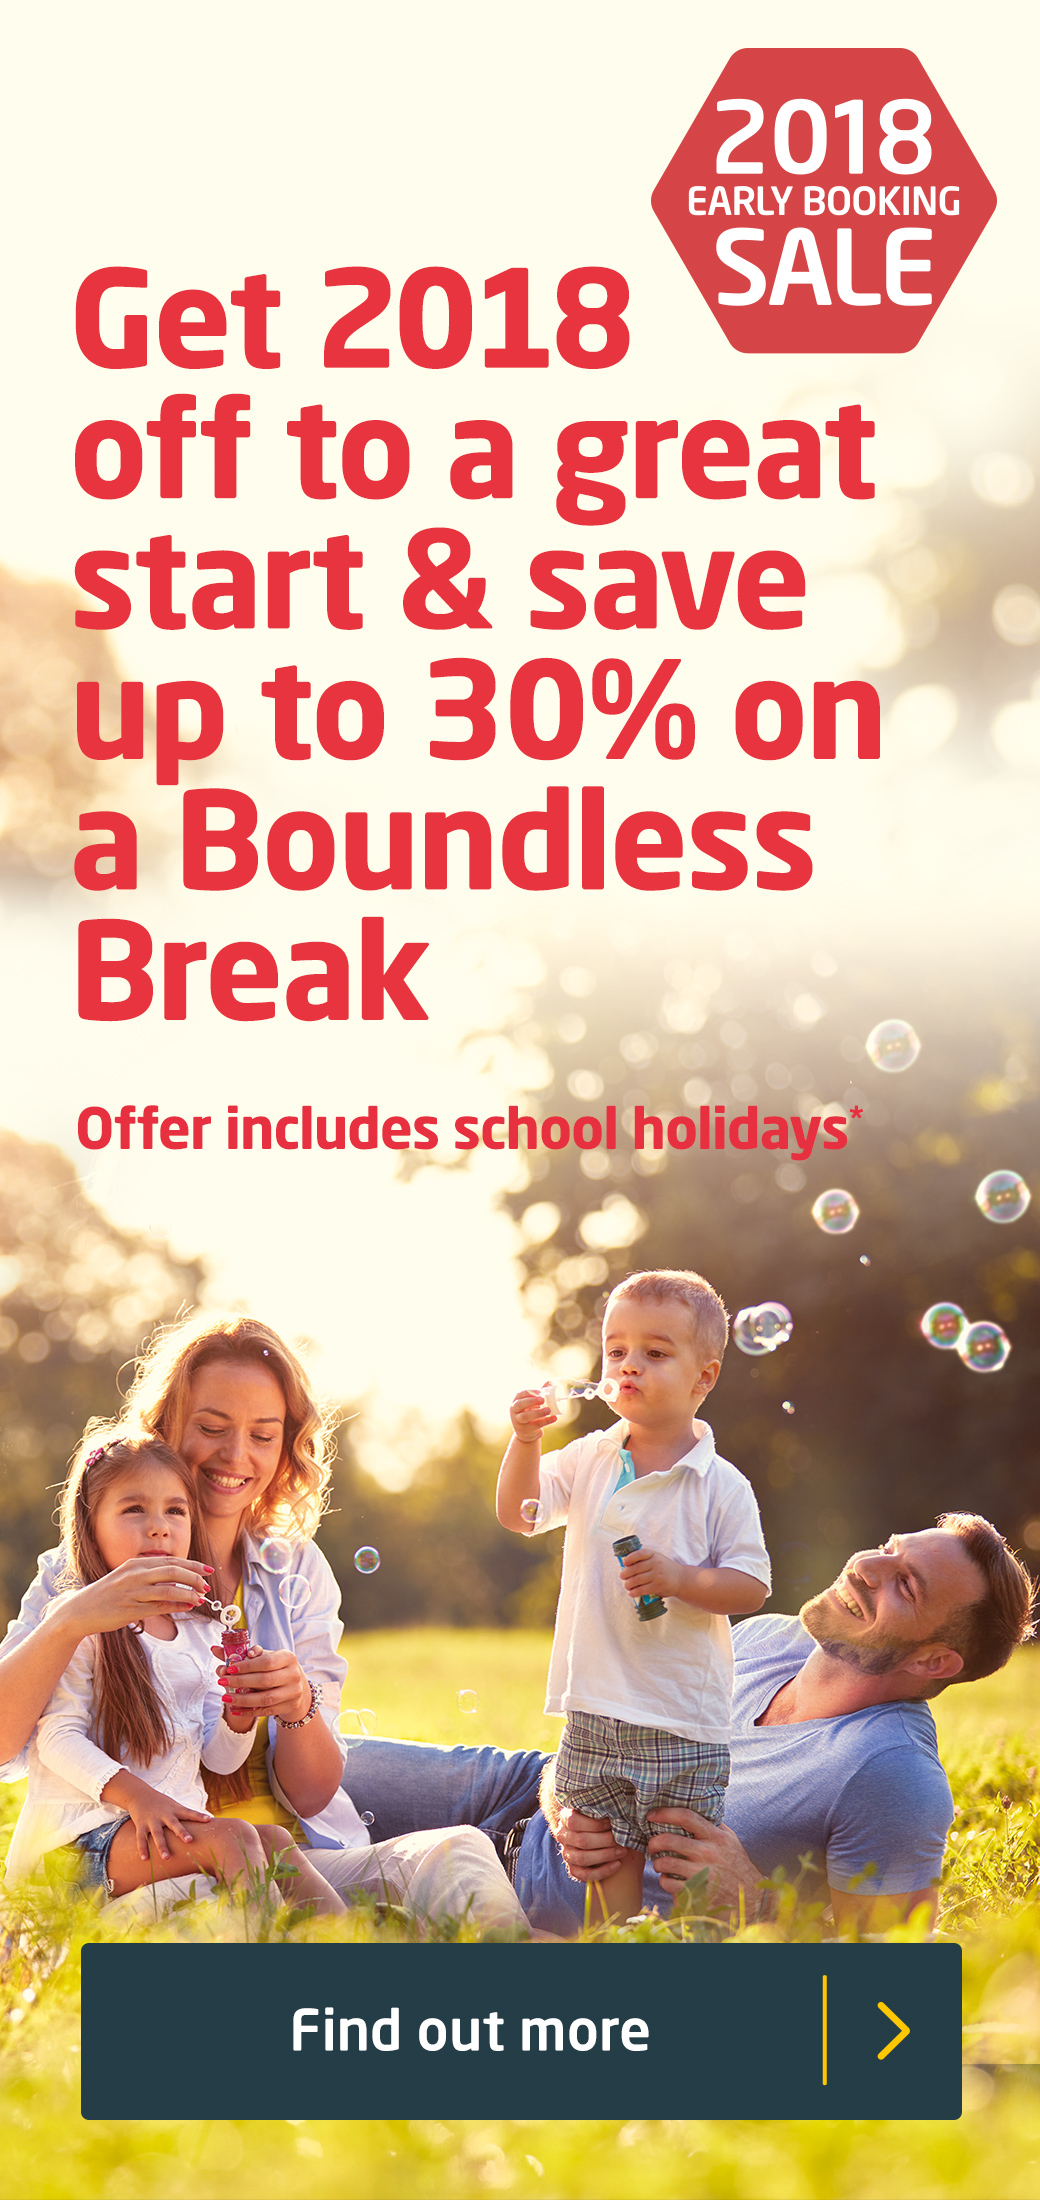 Get 2018 off to a great start & save up to 30% on a Boundless Break